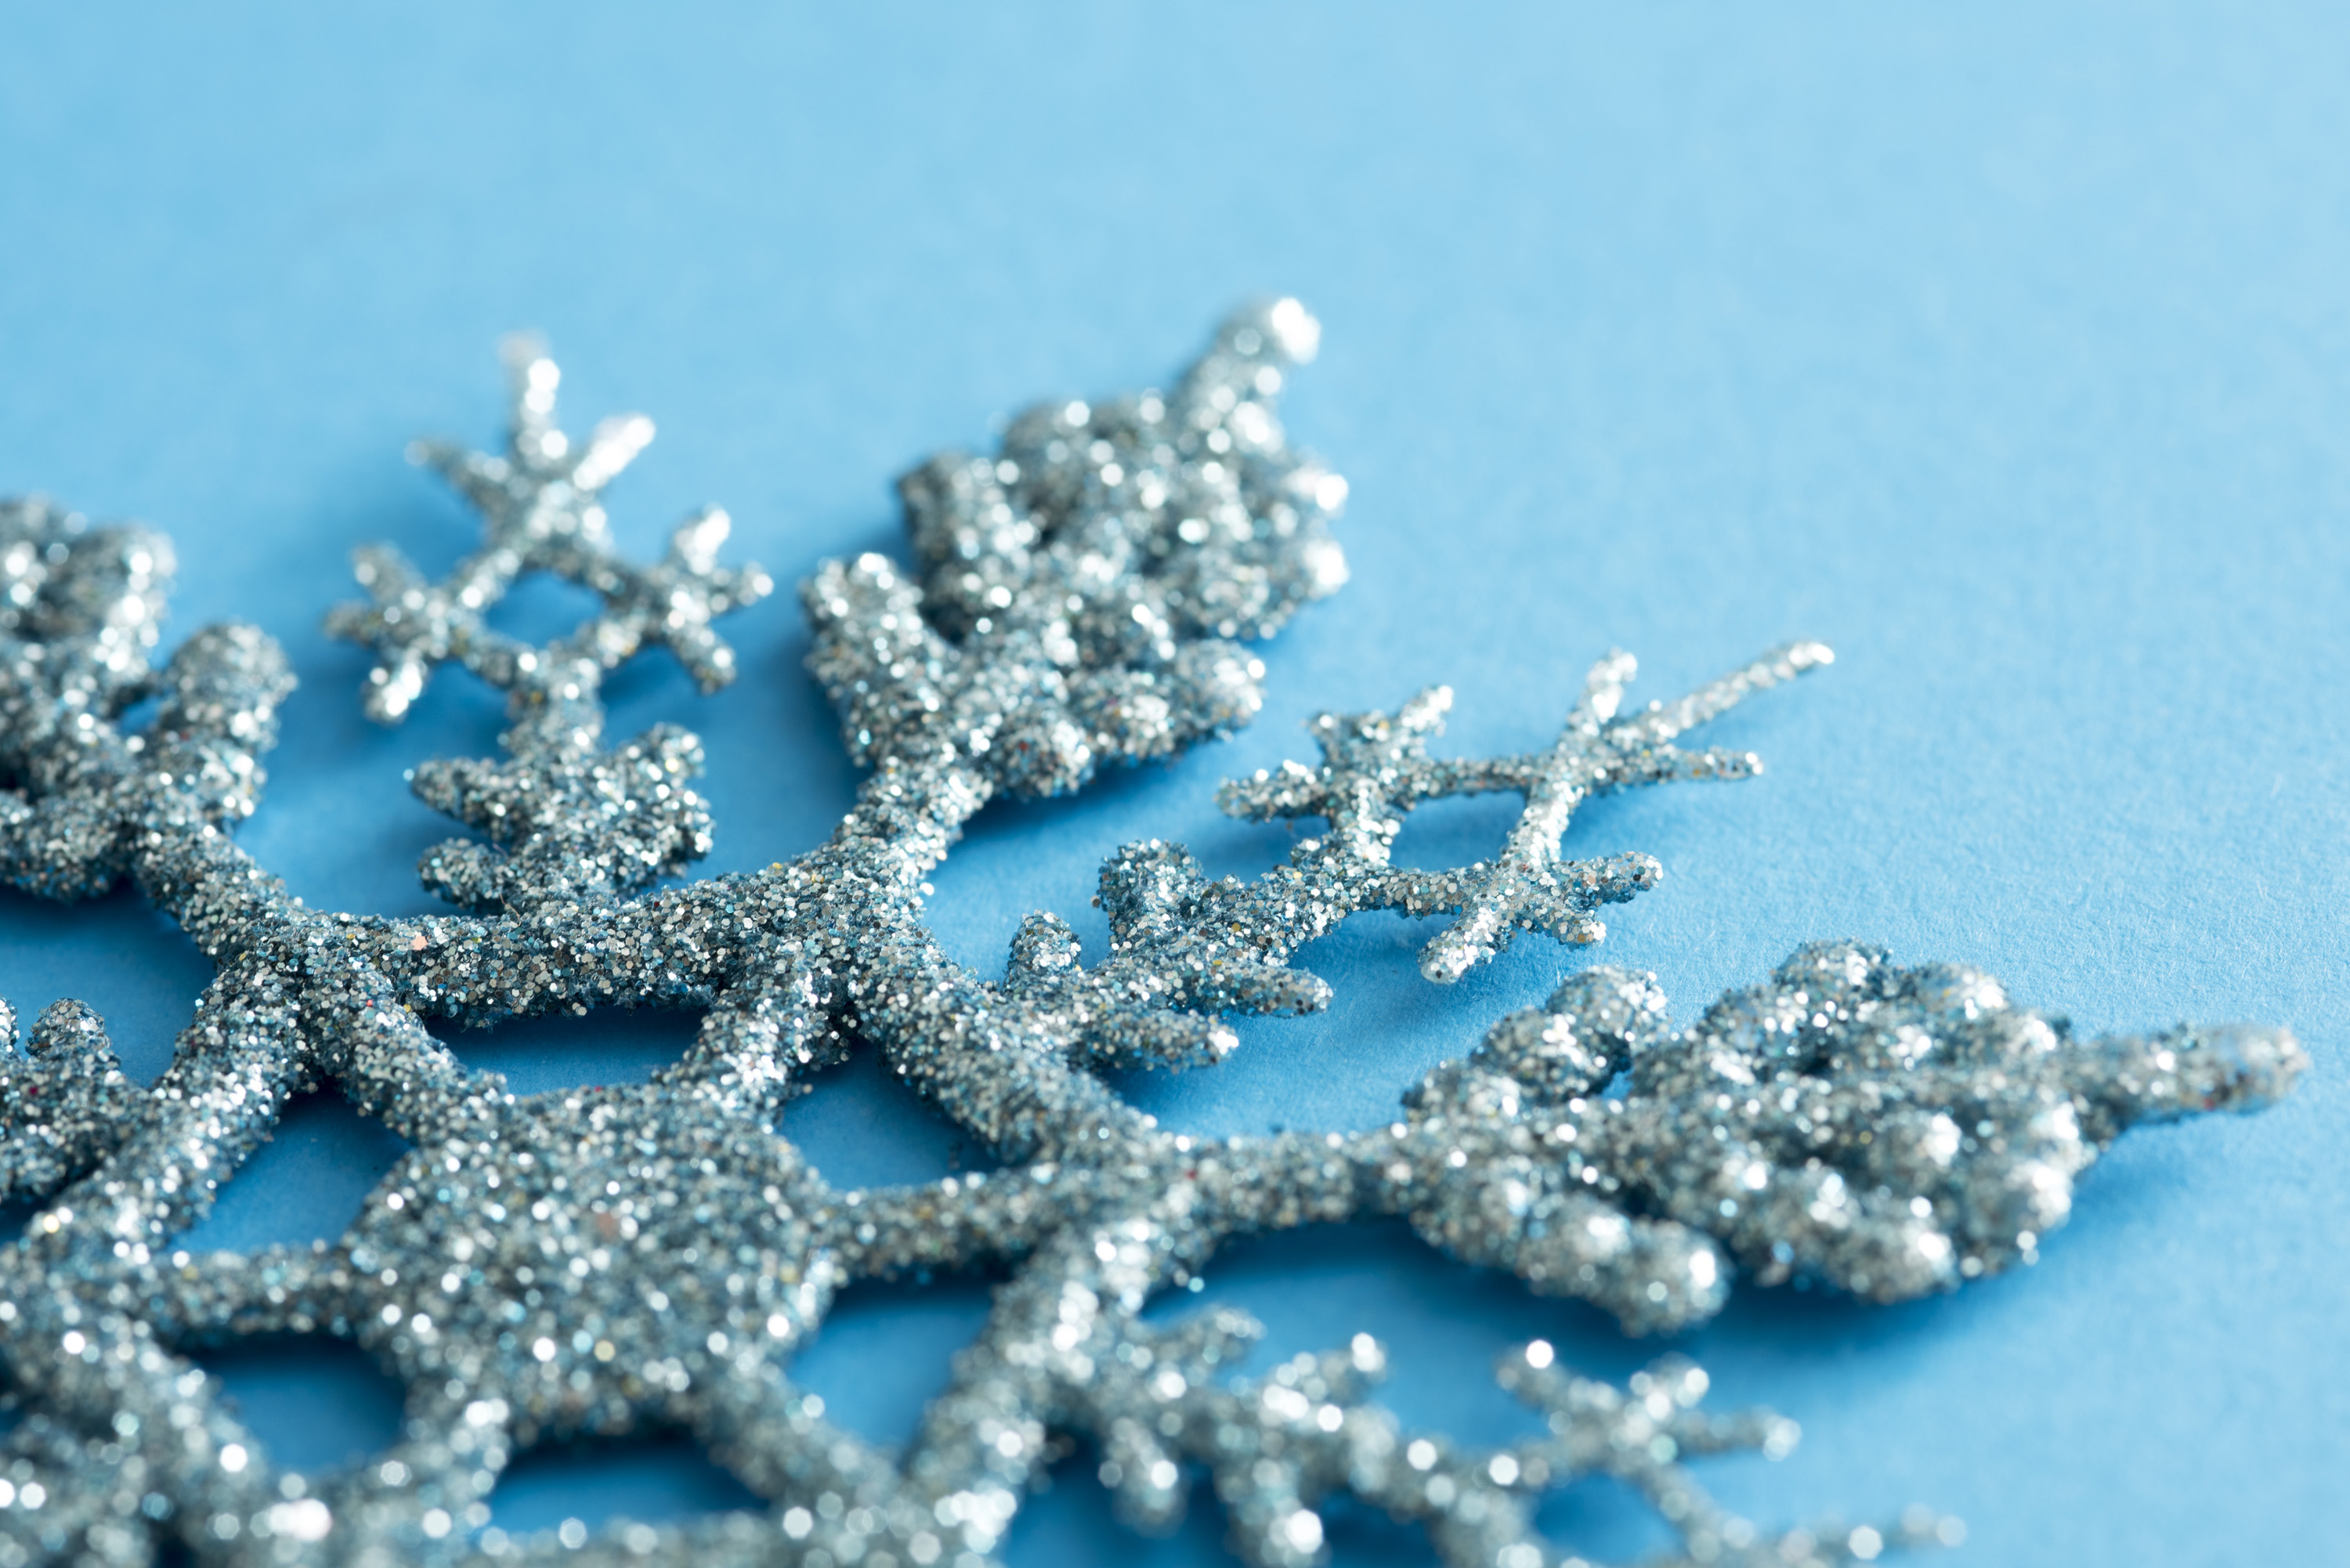 Photo Of Glitter Texture On A Blue Snowflake Decoration